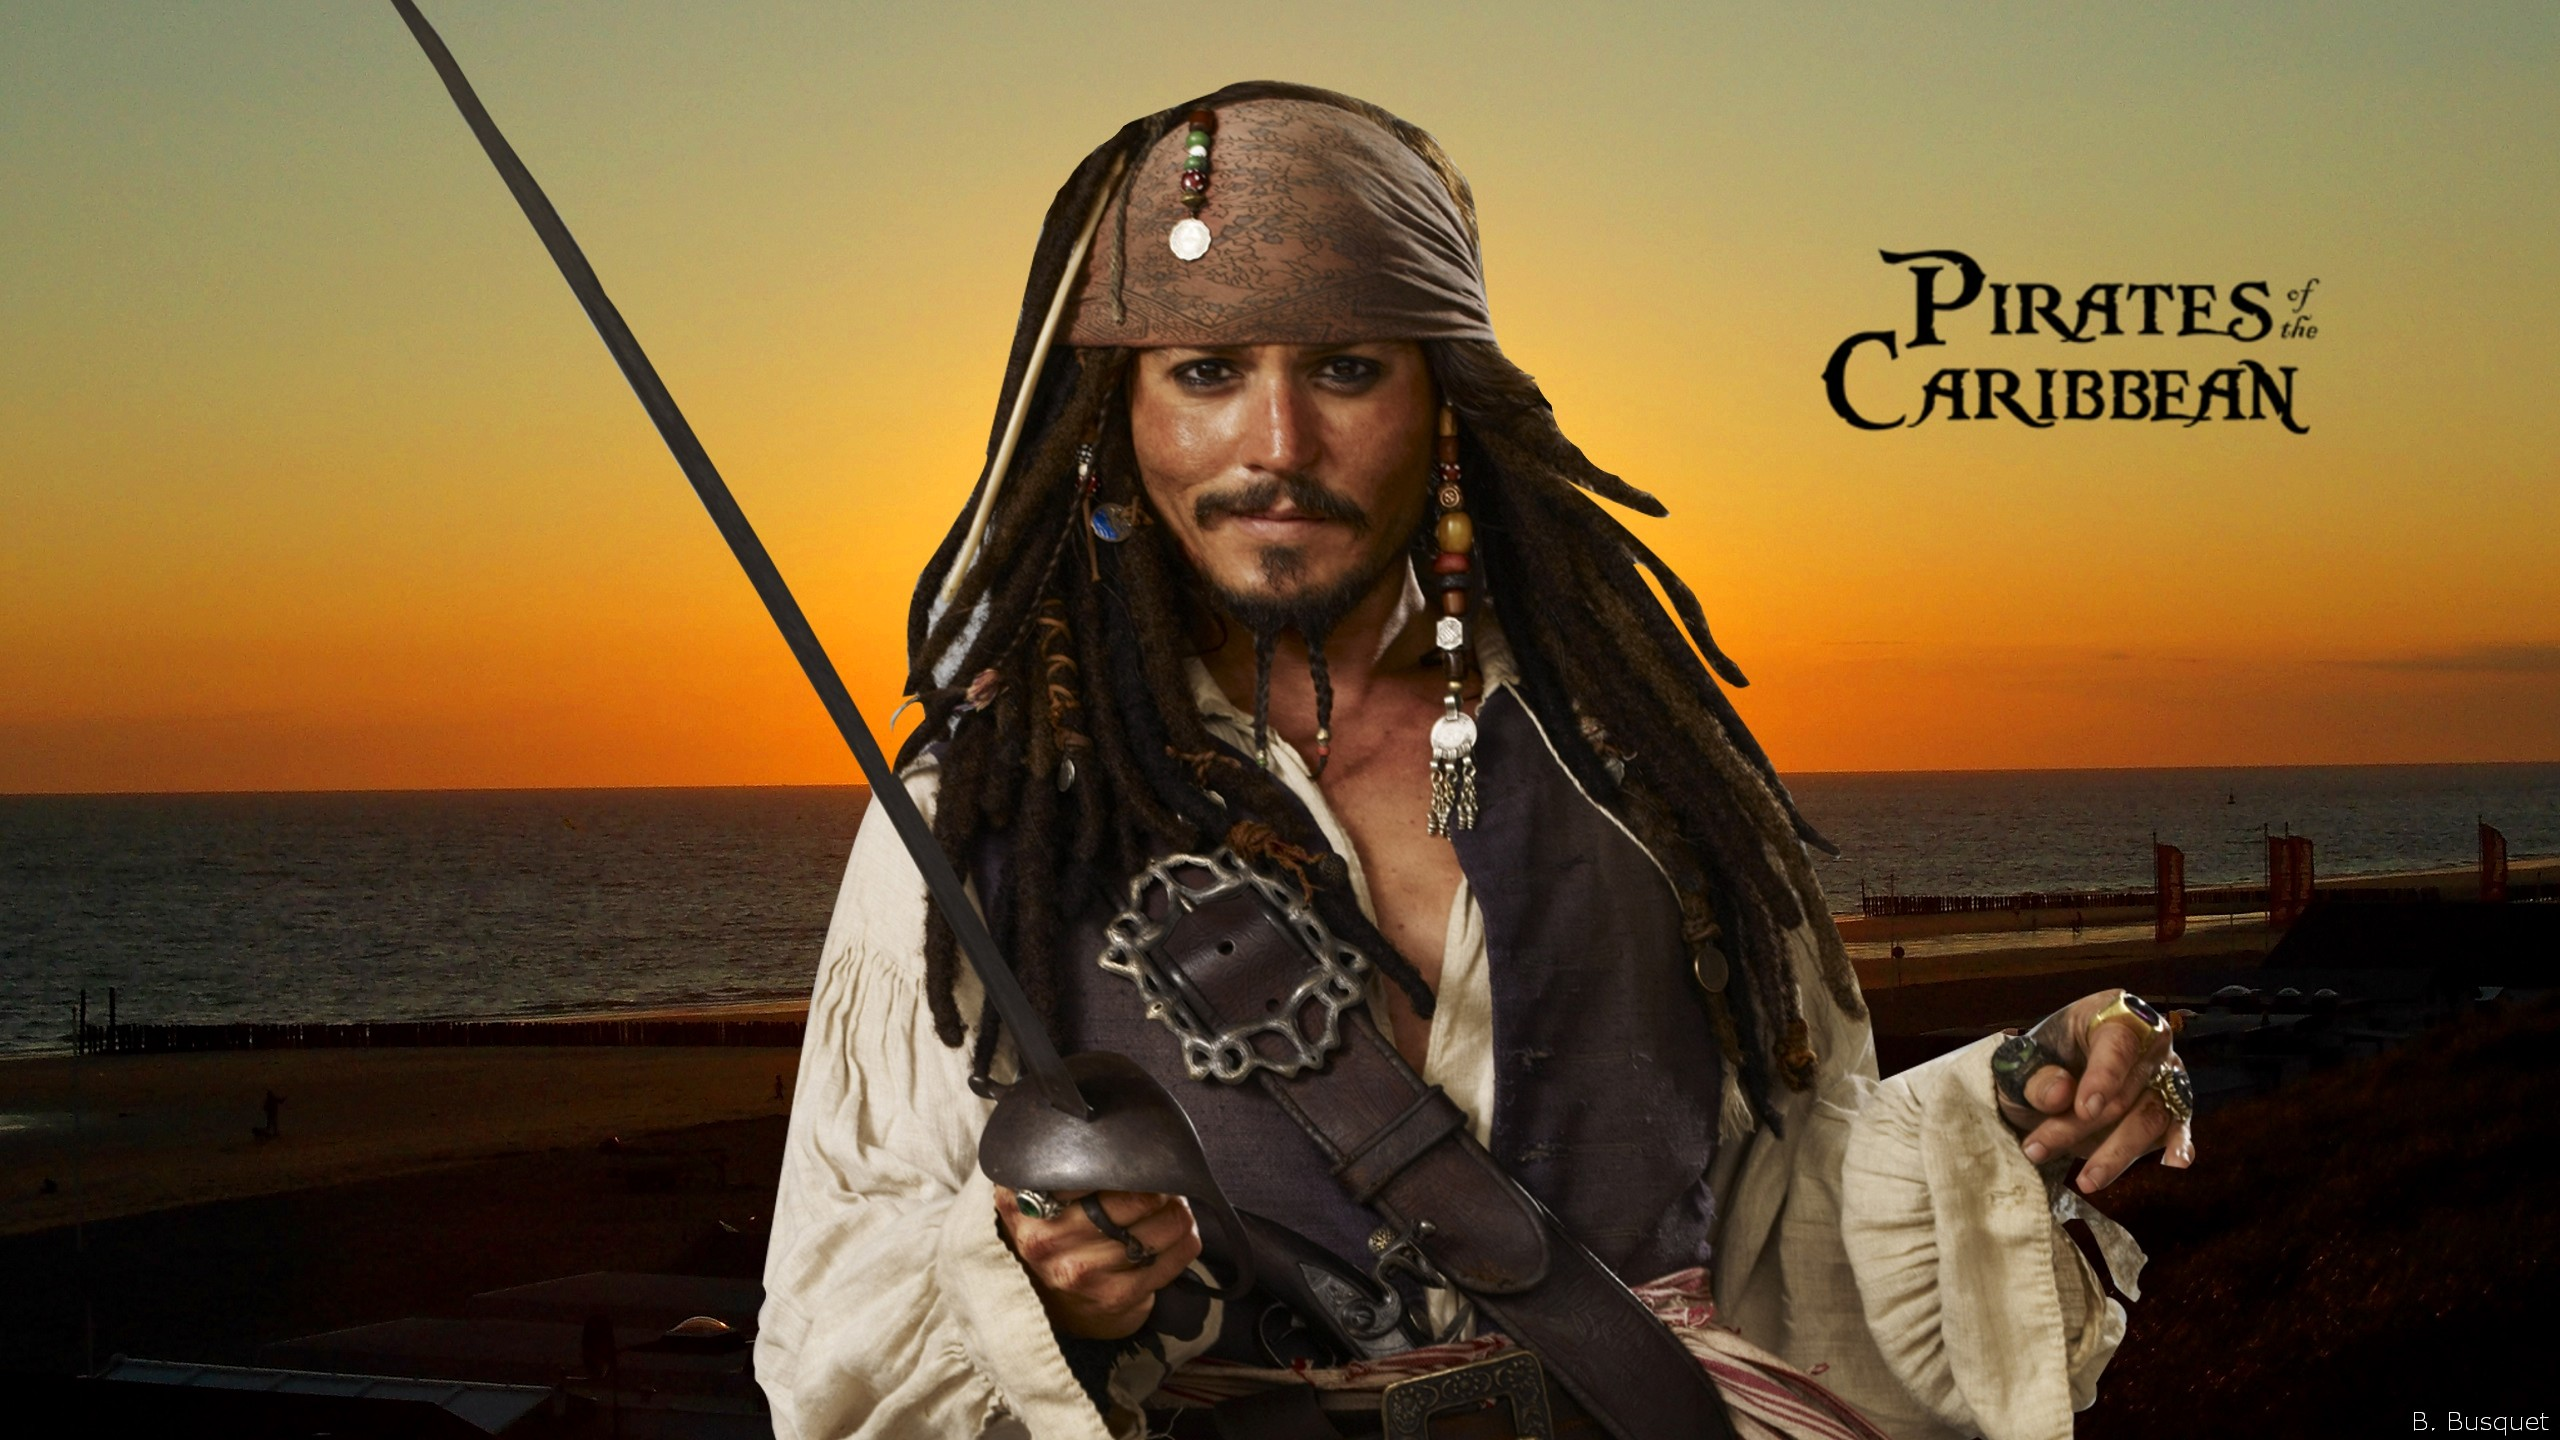 Pirates of the caribbean wallpapers barbaras hd wallpapers - Pirates of the caribbean images hd ...